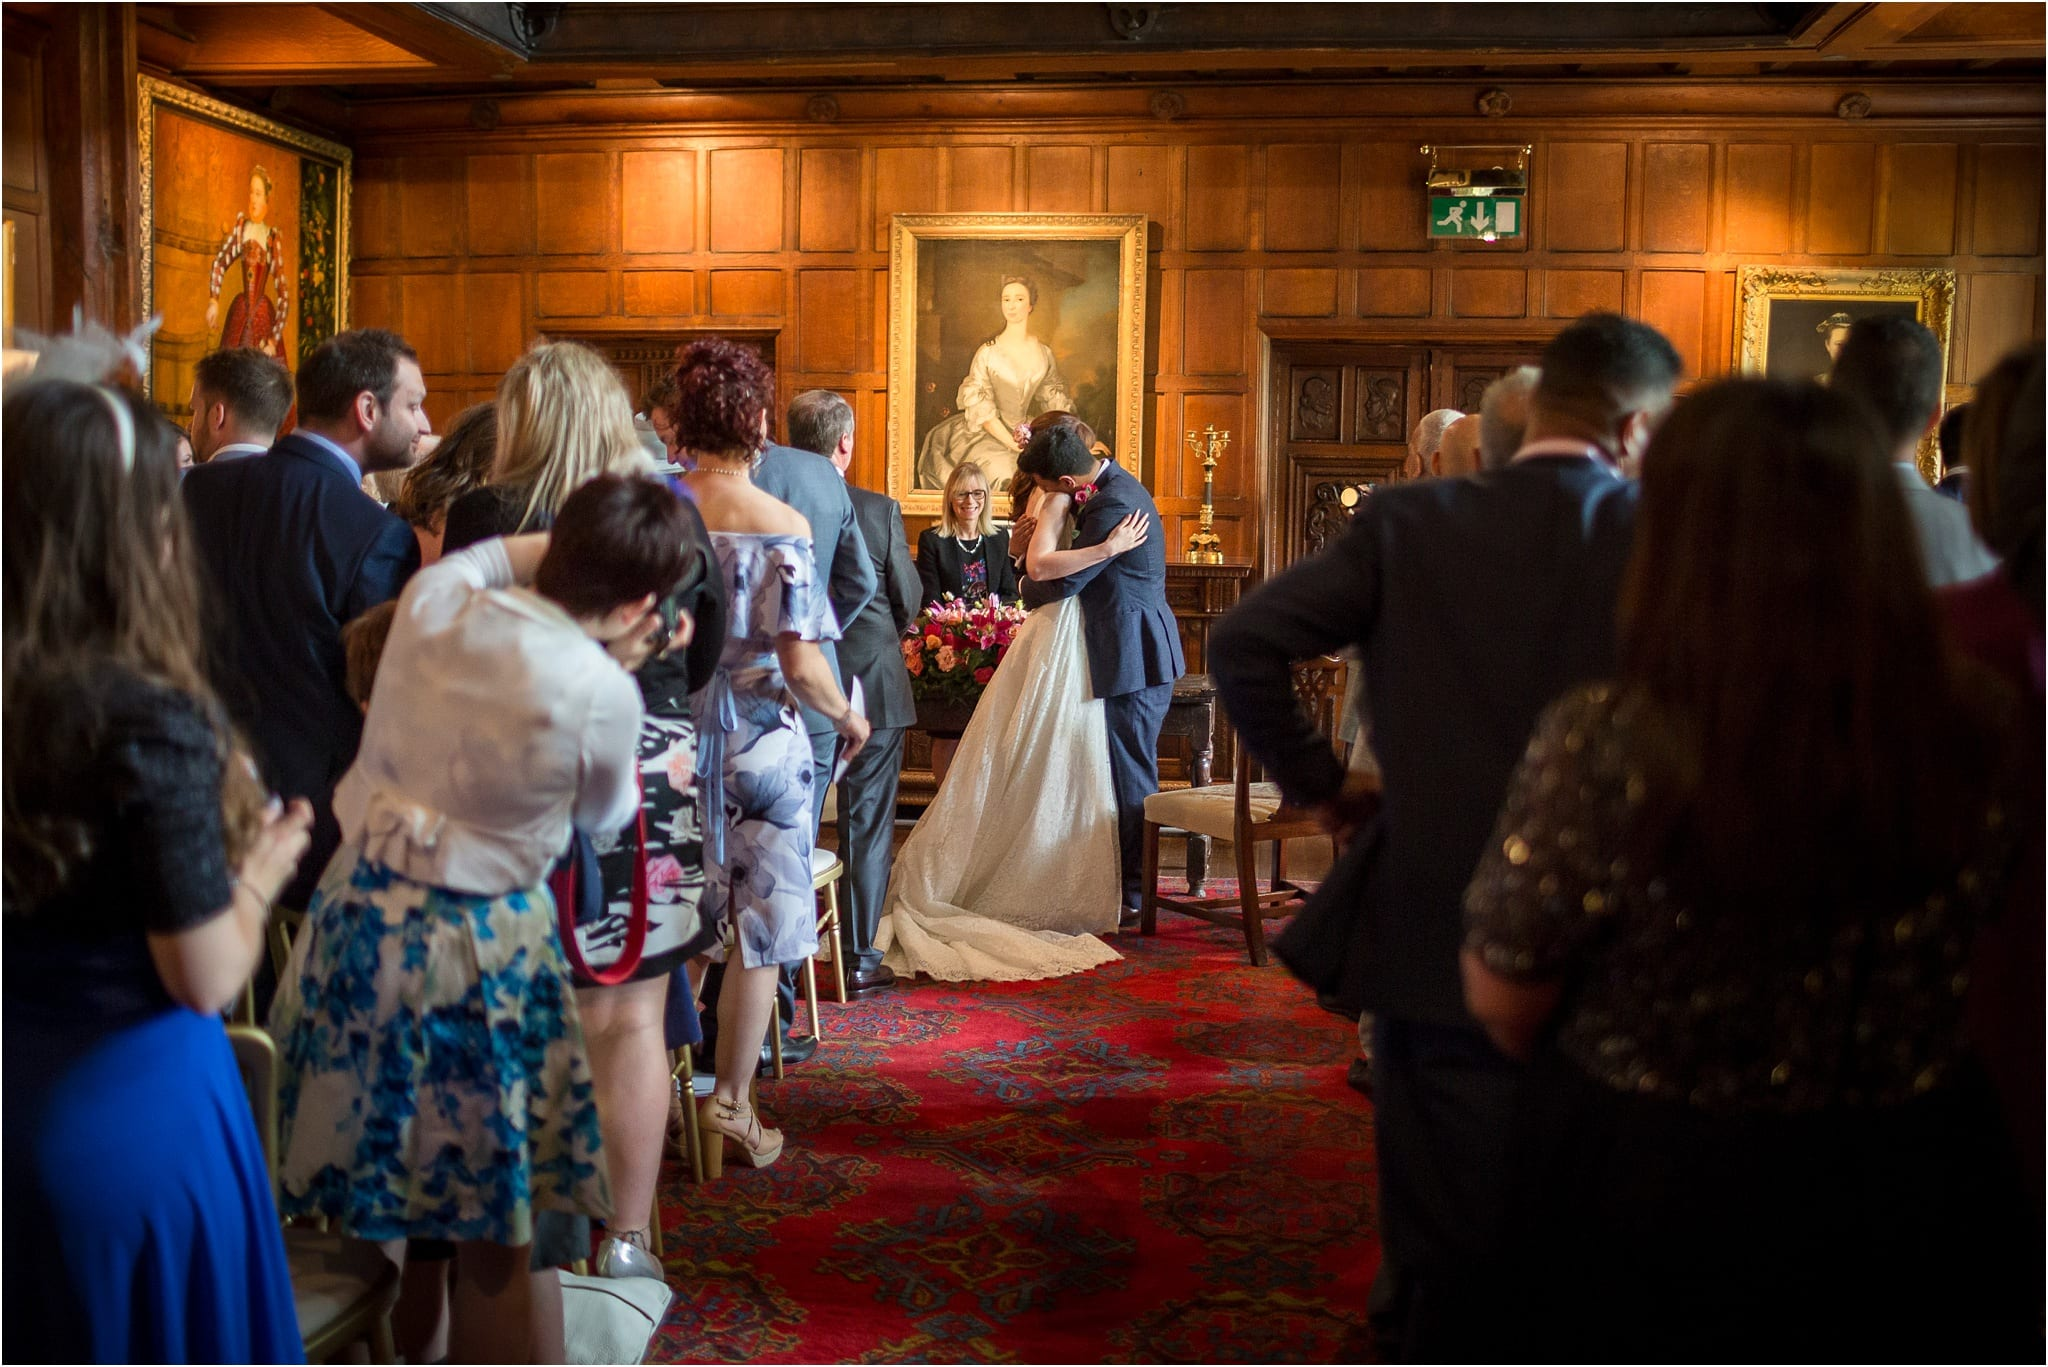 A couple hugging after saying their wedding vows. Image by S2 Images, Hampden House Wedding Photographer